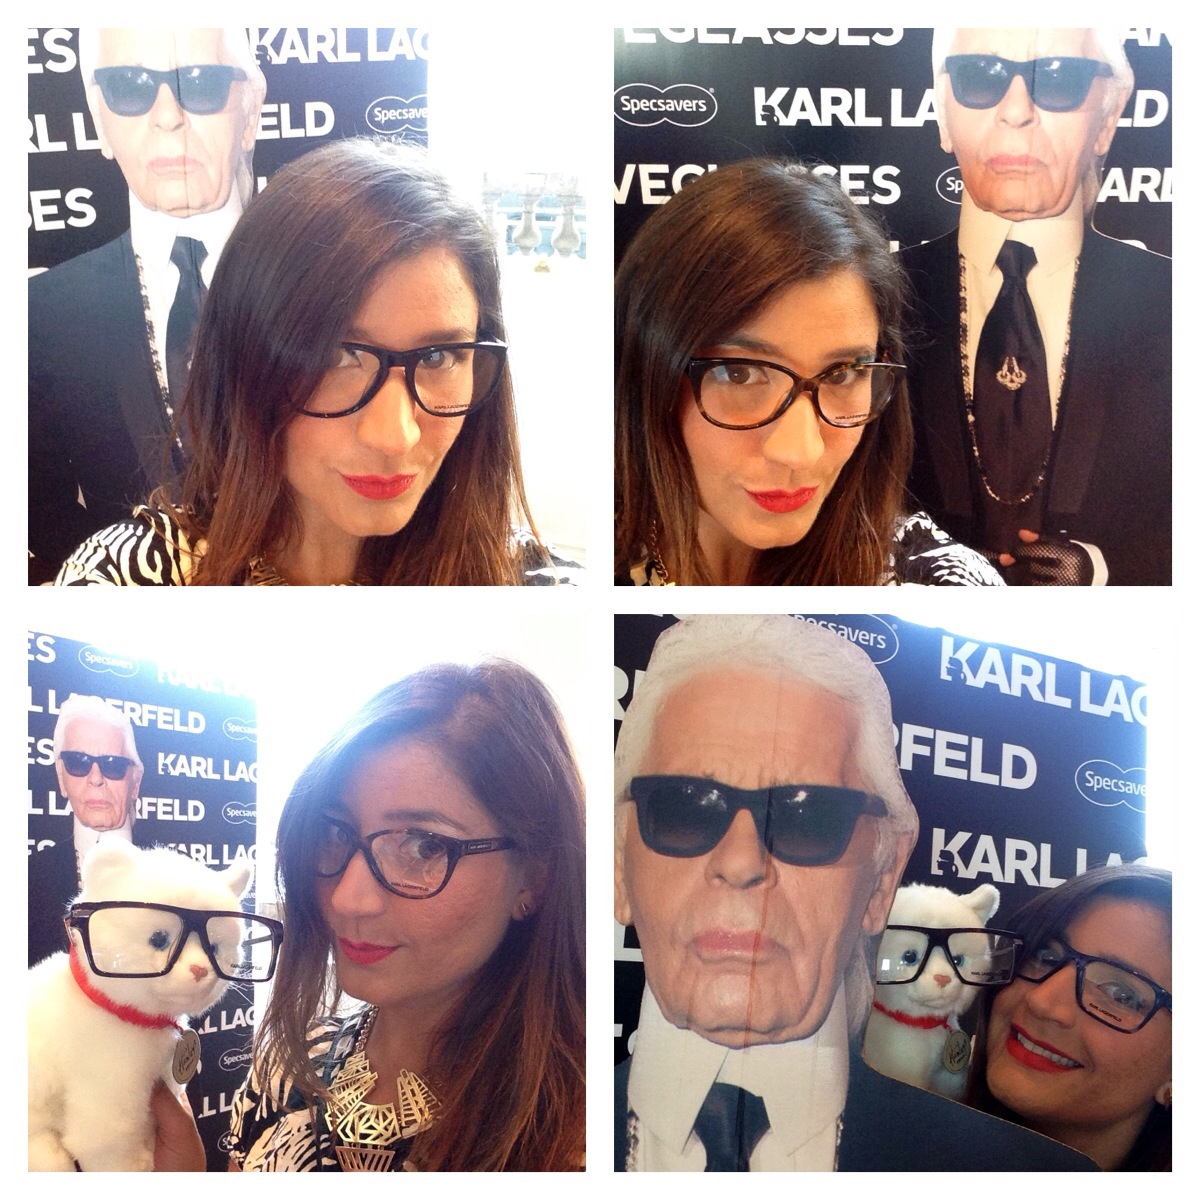 b4552e69f96 Specsavers AW14 Fashion frames collection showcase